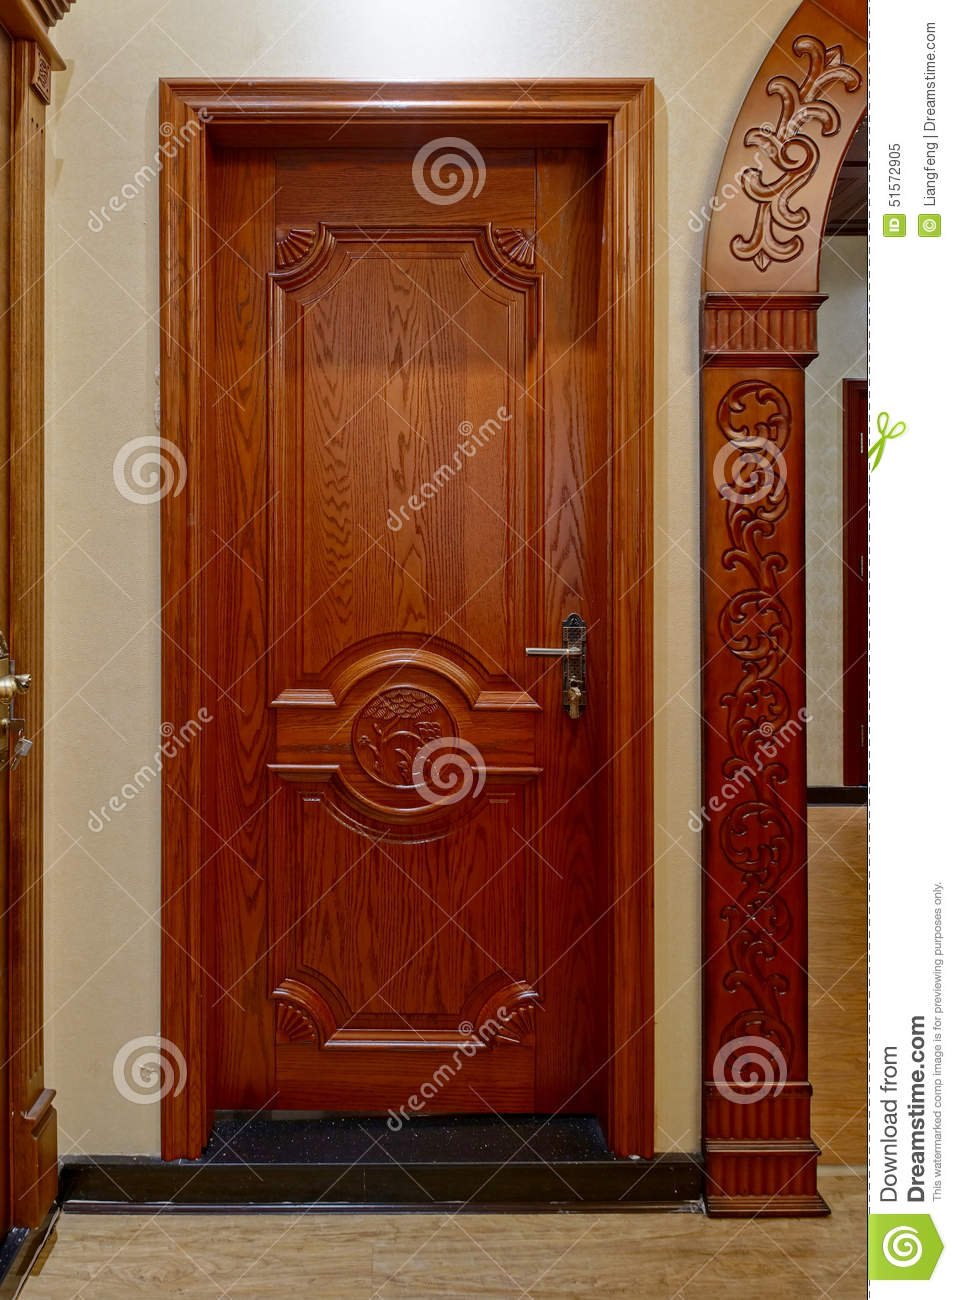 Wooden door stock image image of framework house exit for Beautiful wooden doors picture collection